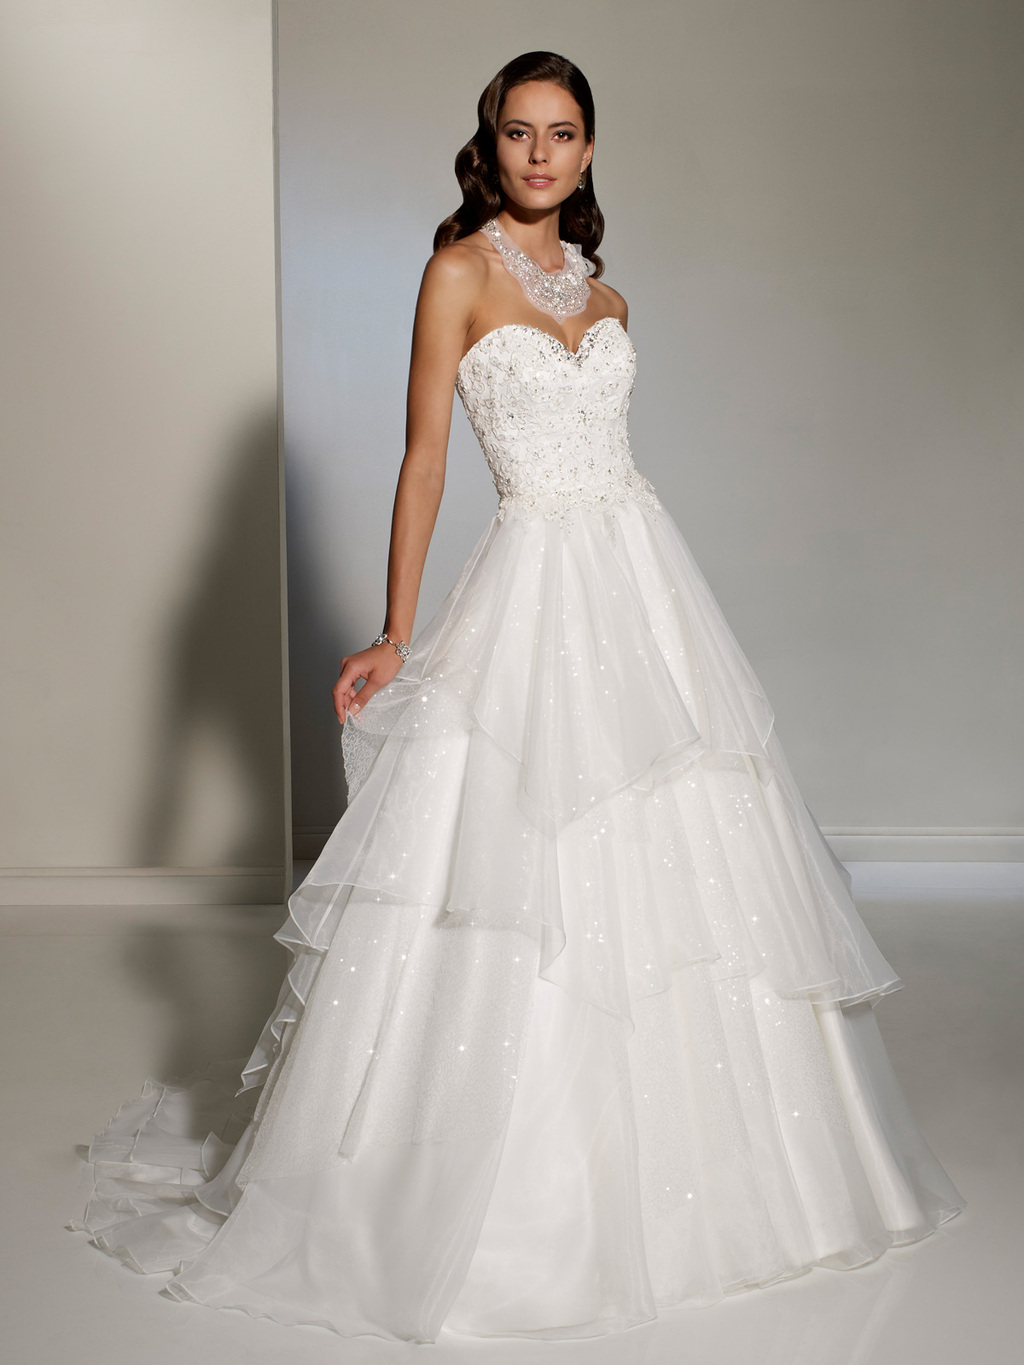 2012-wedding-dress-sophia-tolli-for-mon-cheri-bridal-gowns-y11205.full